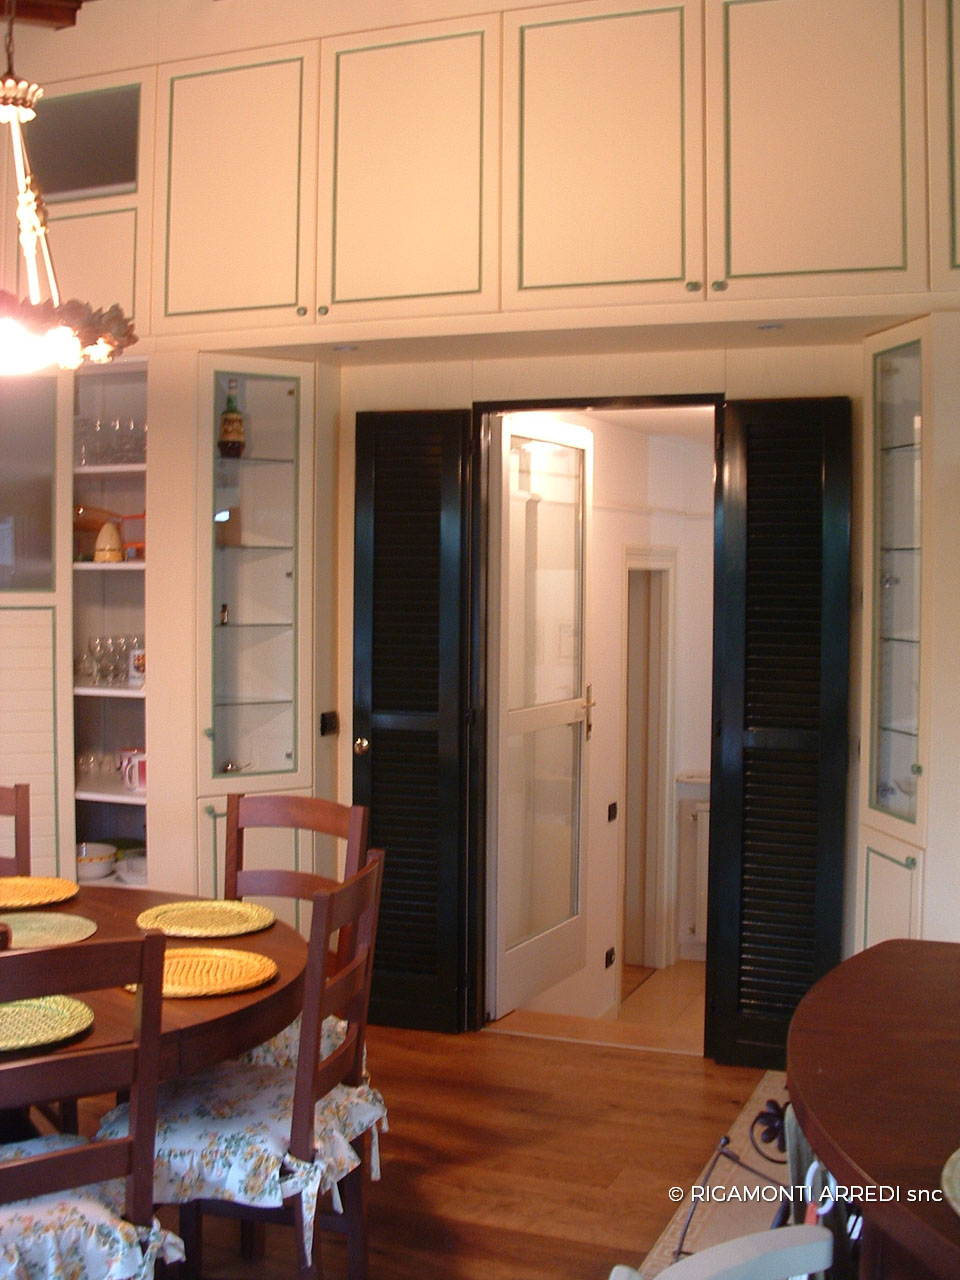 Lacquered kitchen and dining area with green decor and for Boiserie dwg